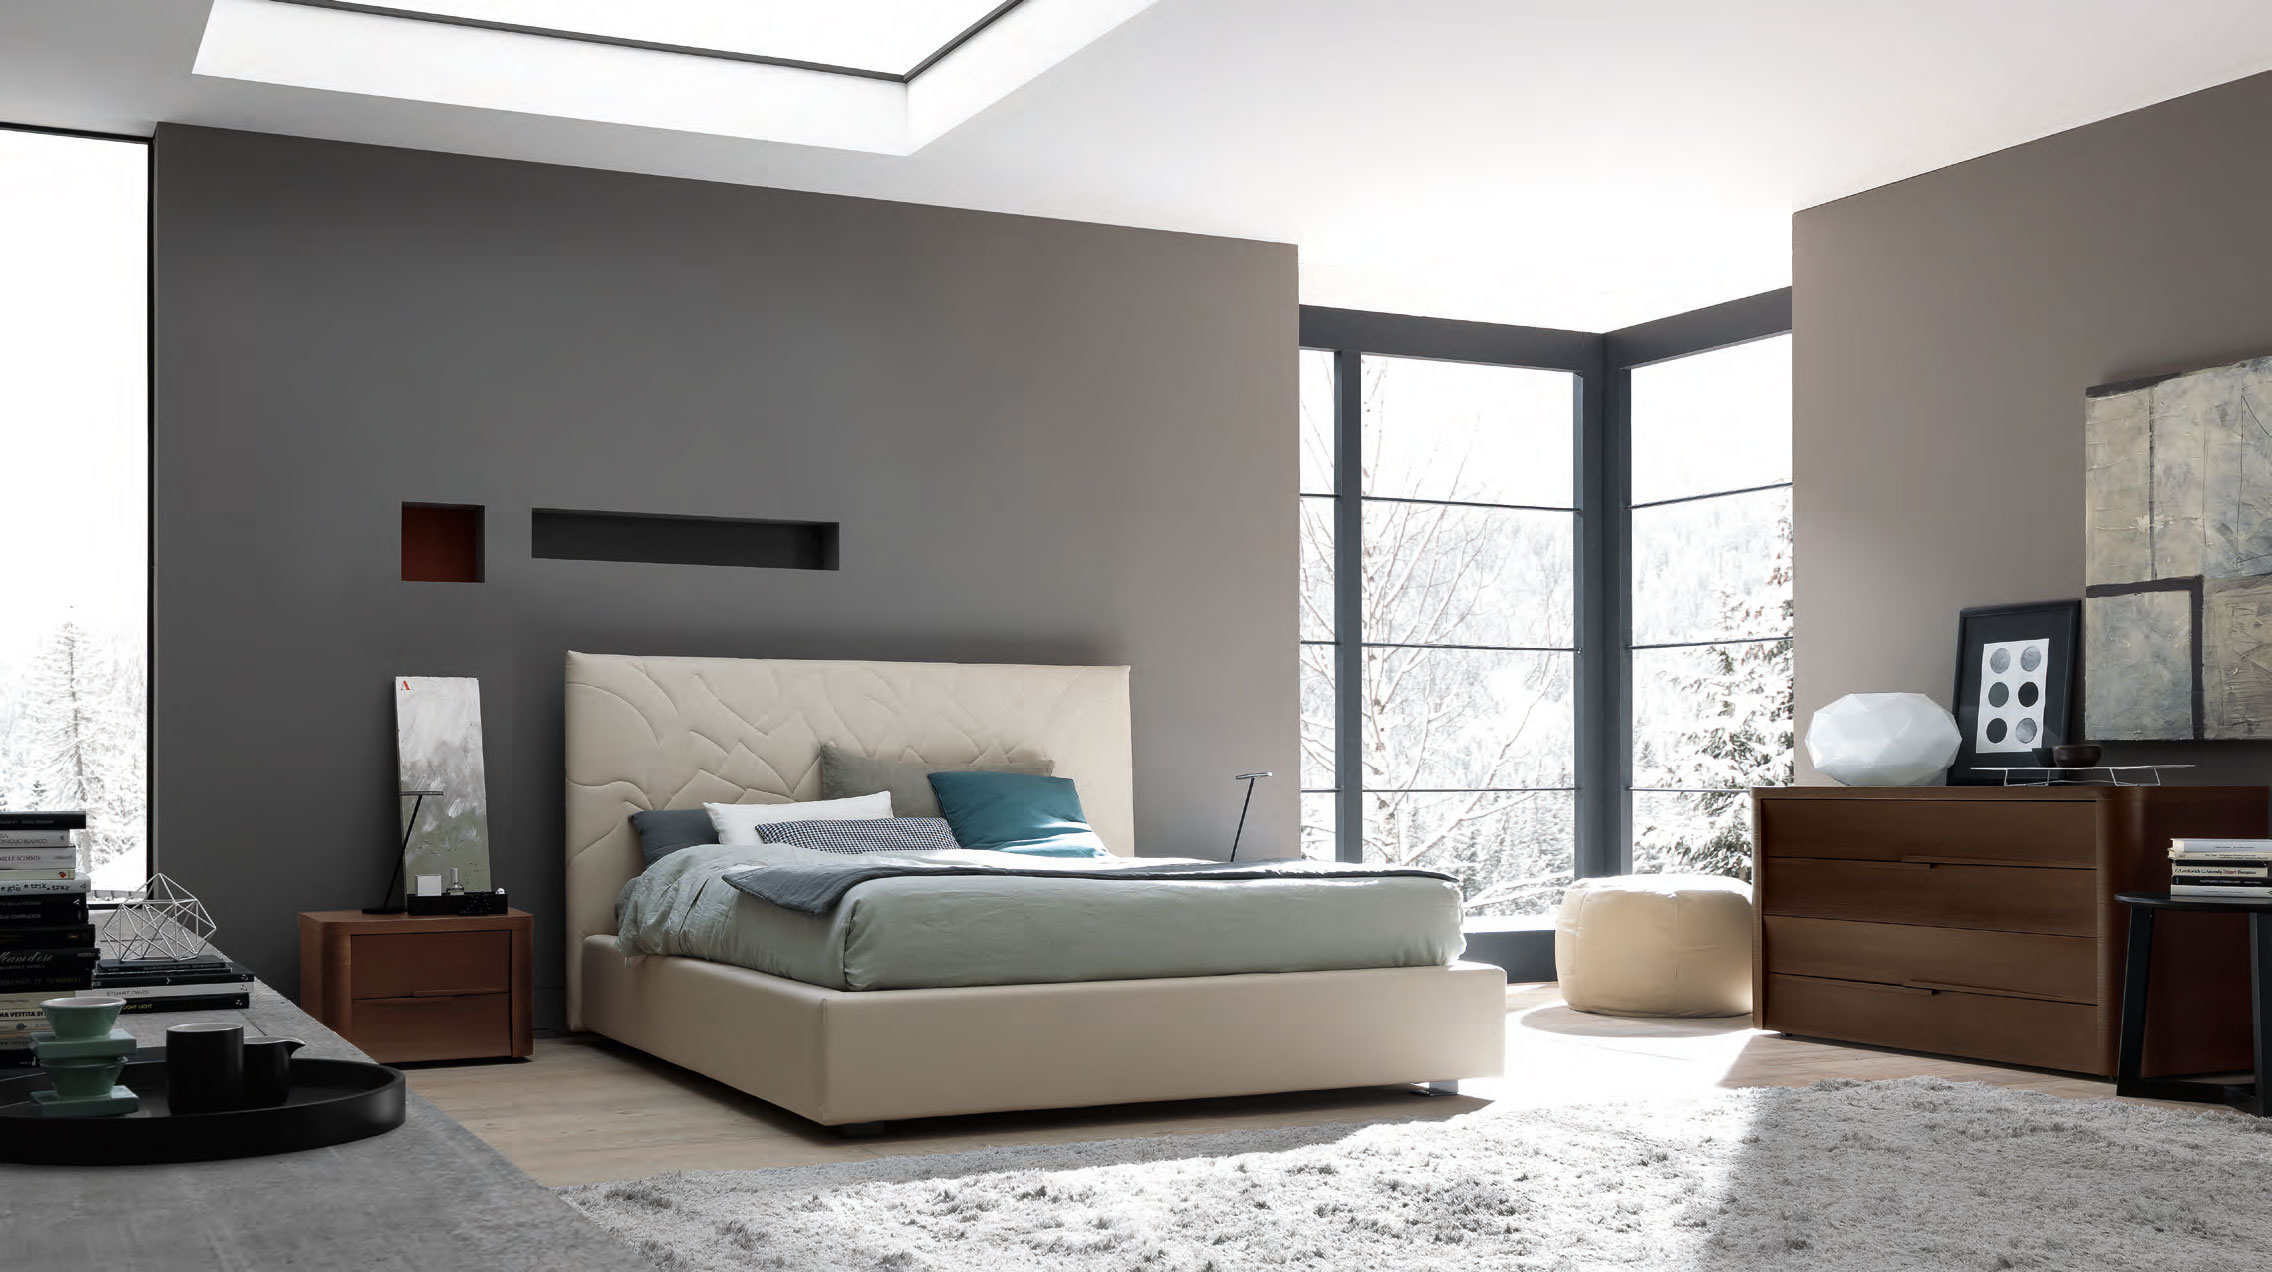 10 eye catching modern bedroom decoration ideas modern for Modern bedroom designs